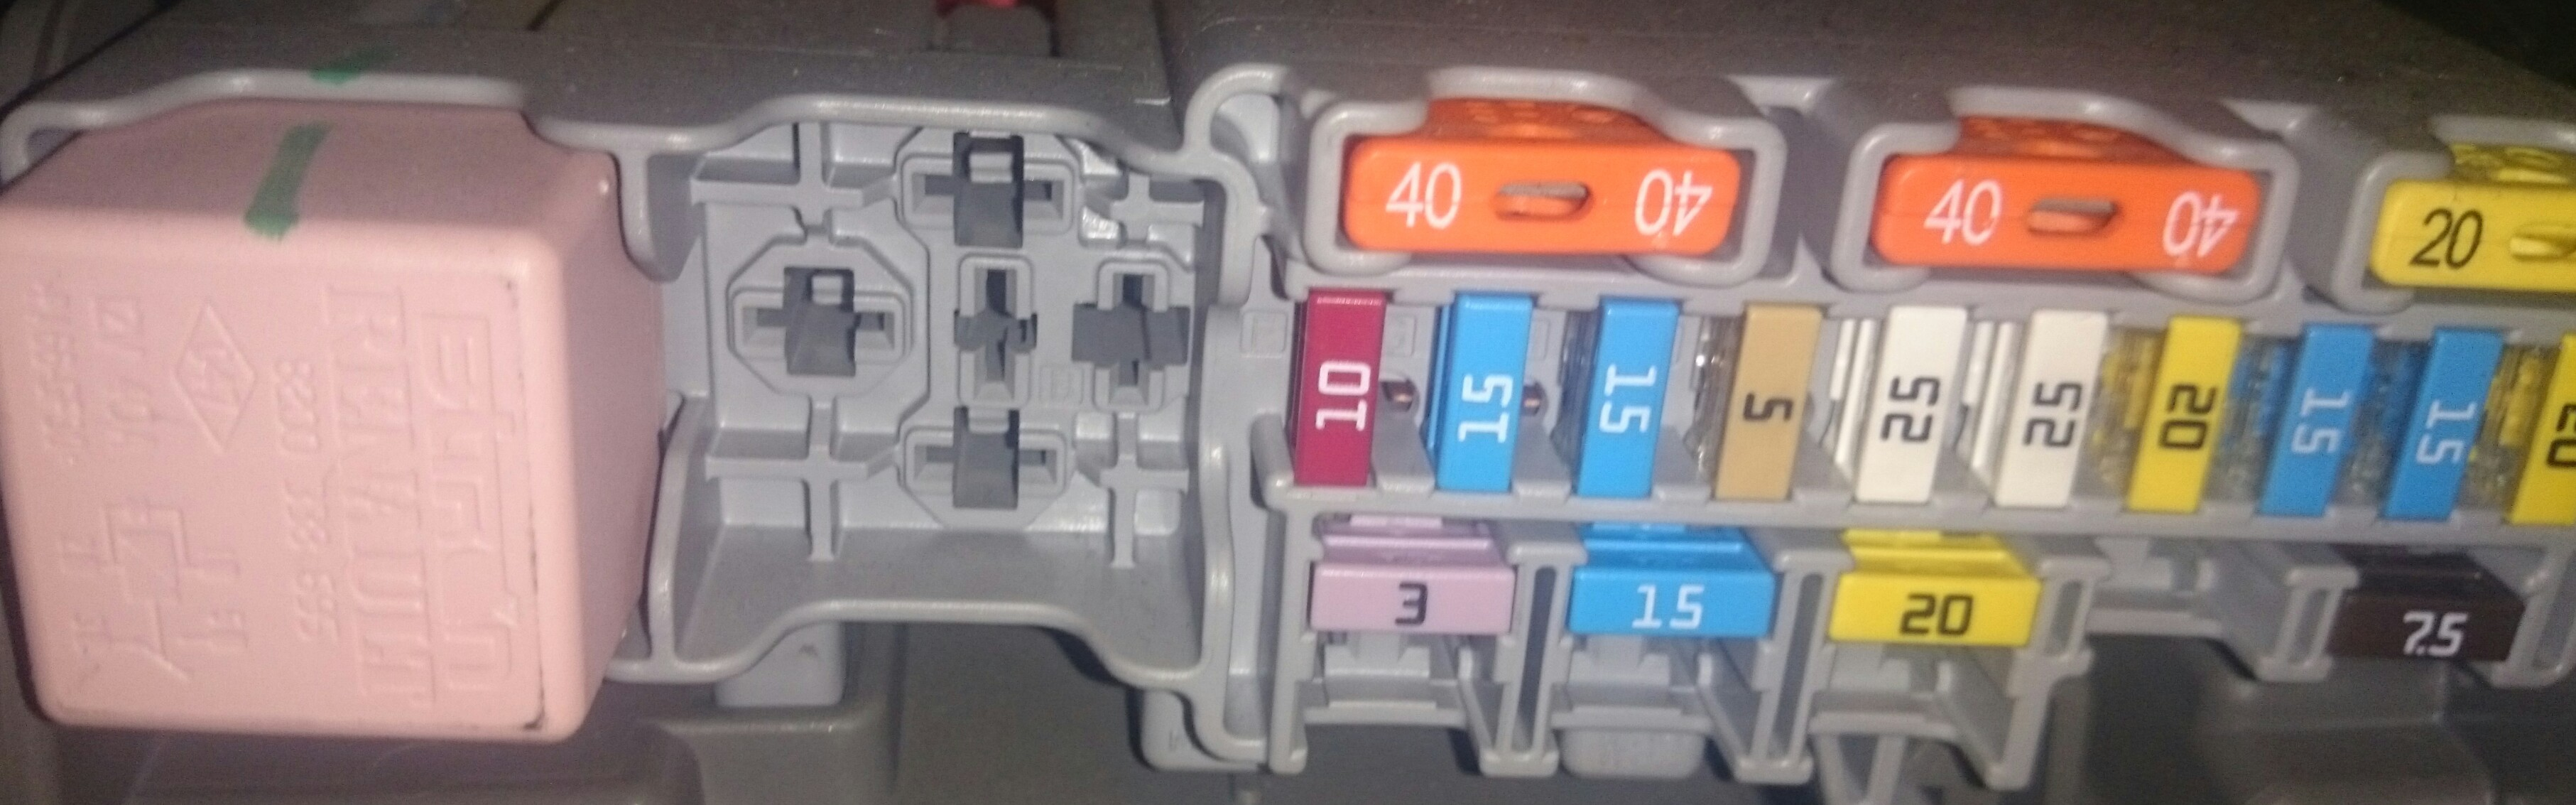 Renault Clio Fuse Box 2007 Wiring Library Iii Diagram 29 Images